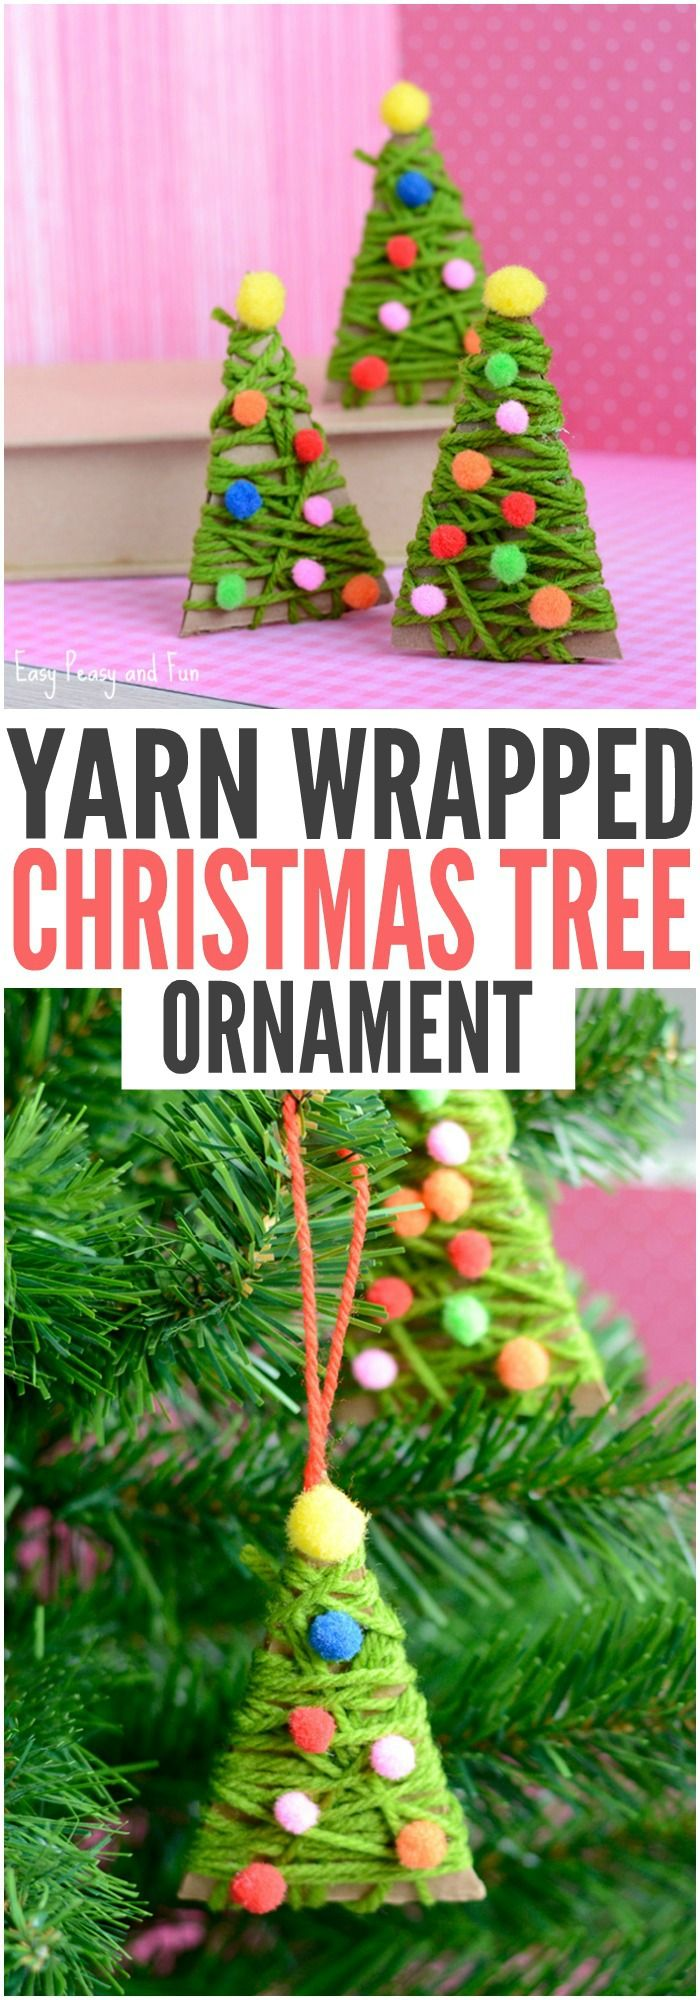 These Yarn Wrapped Ornaments Are Perfect For Kids To Make And They Will Become Cherished